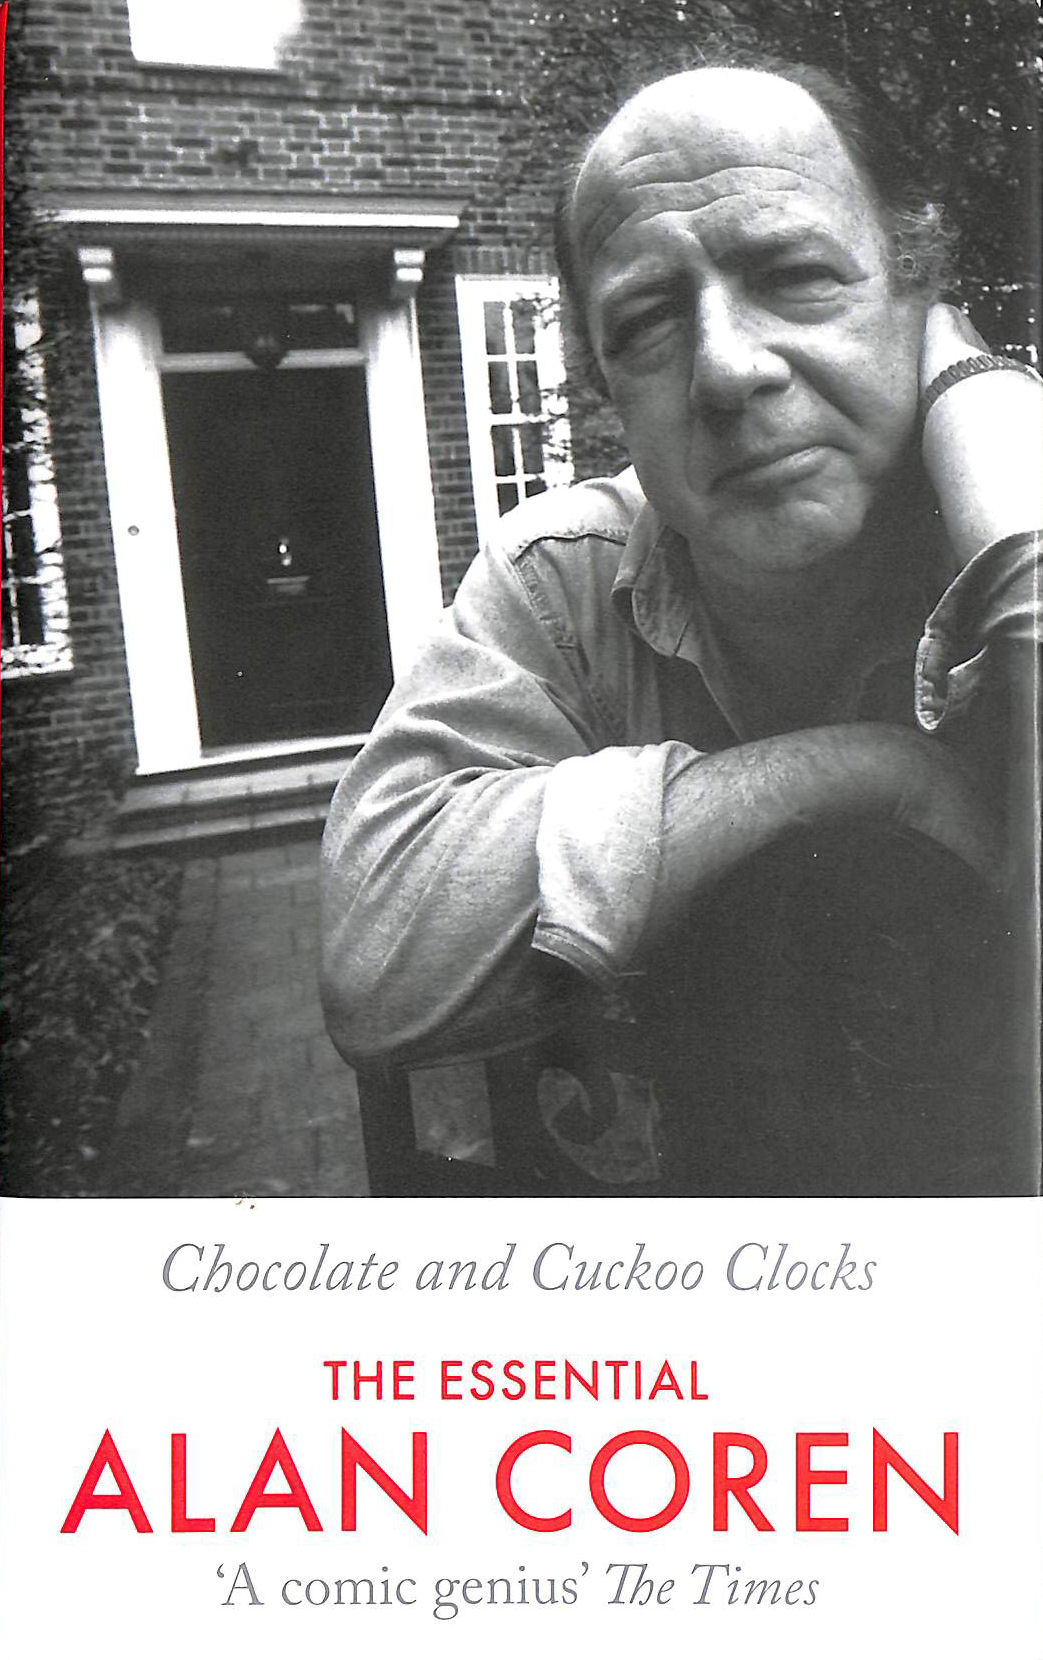 Image for Chocolate and Cuckoo Clocks: The Essential Alan Coren